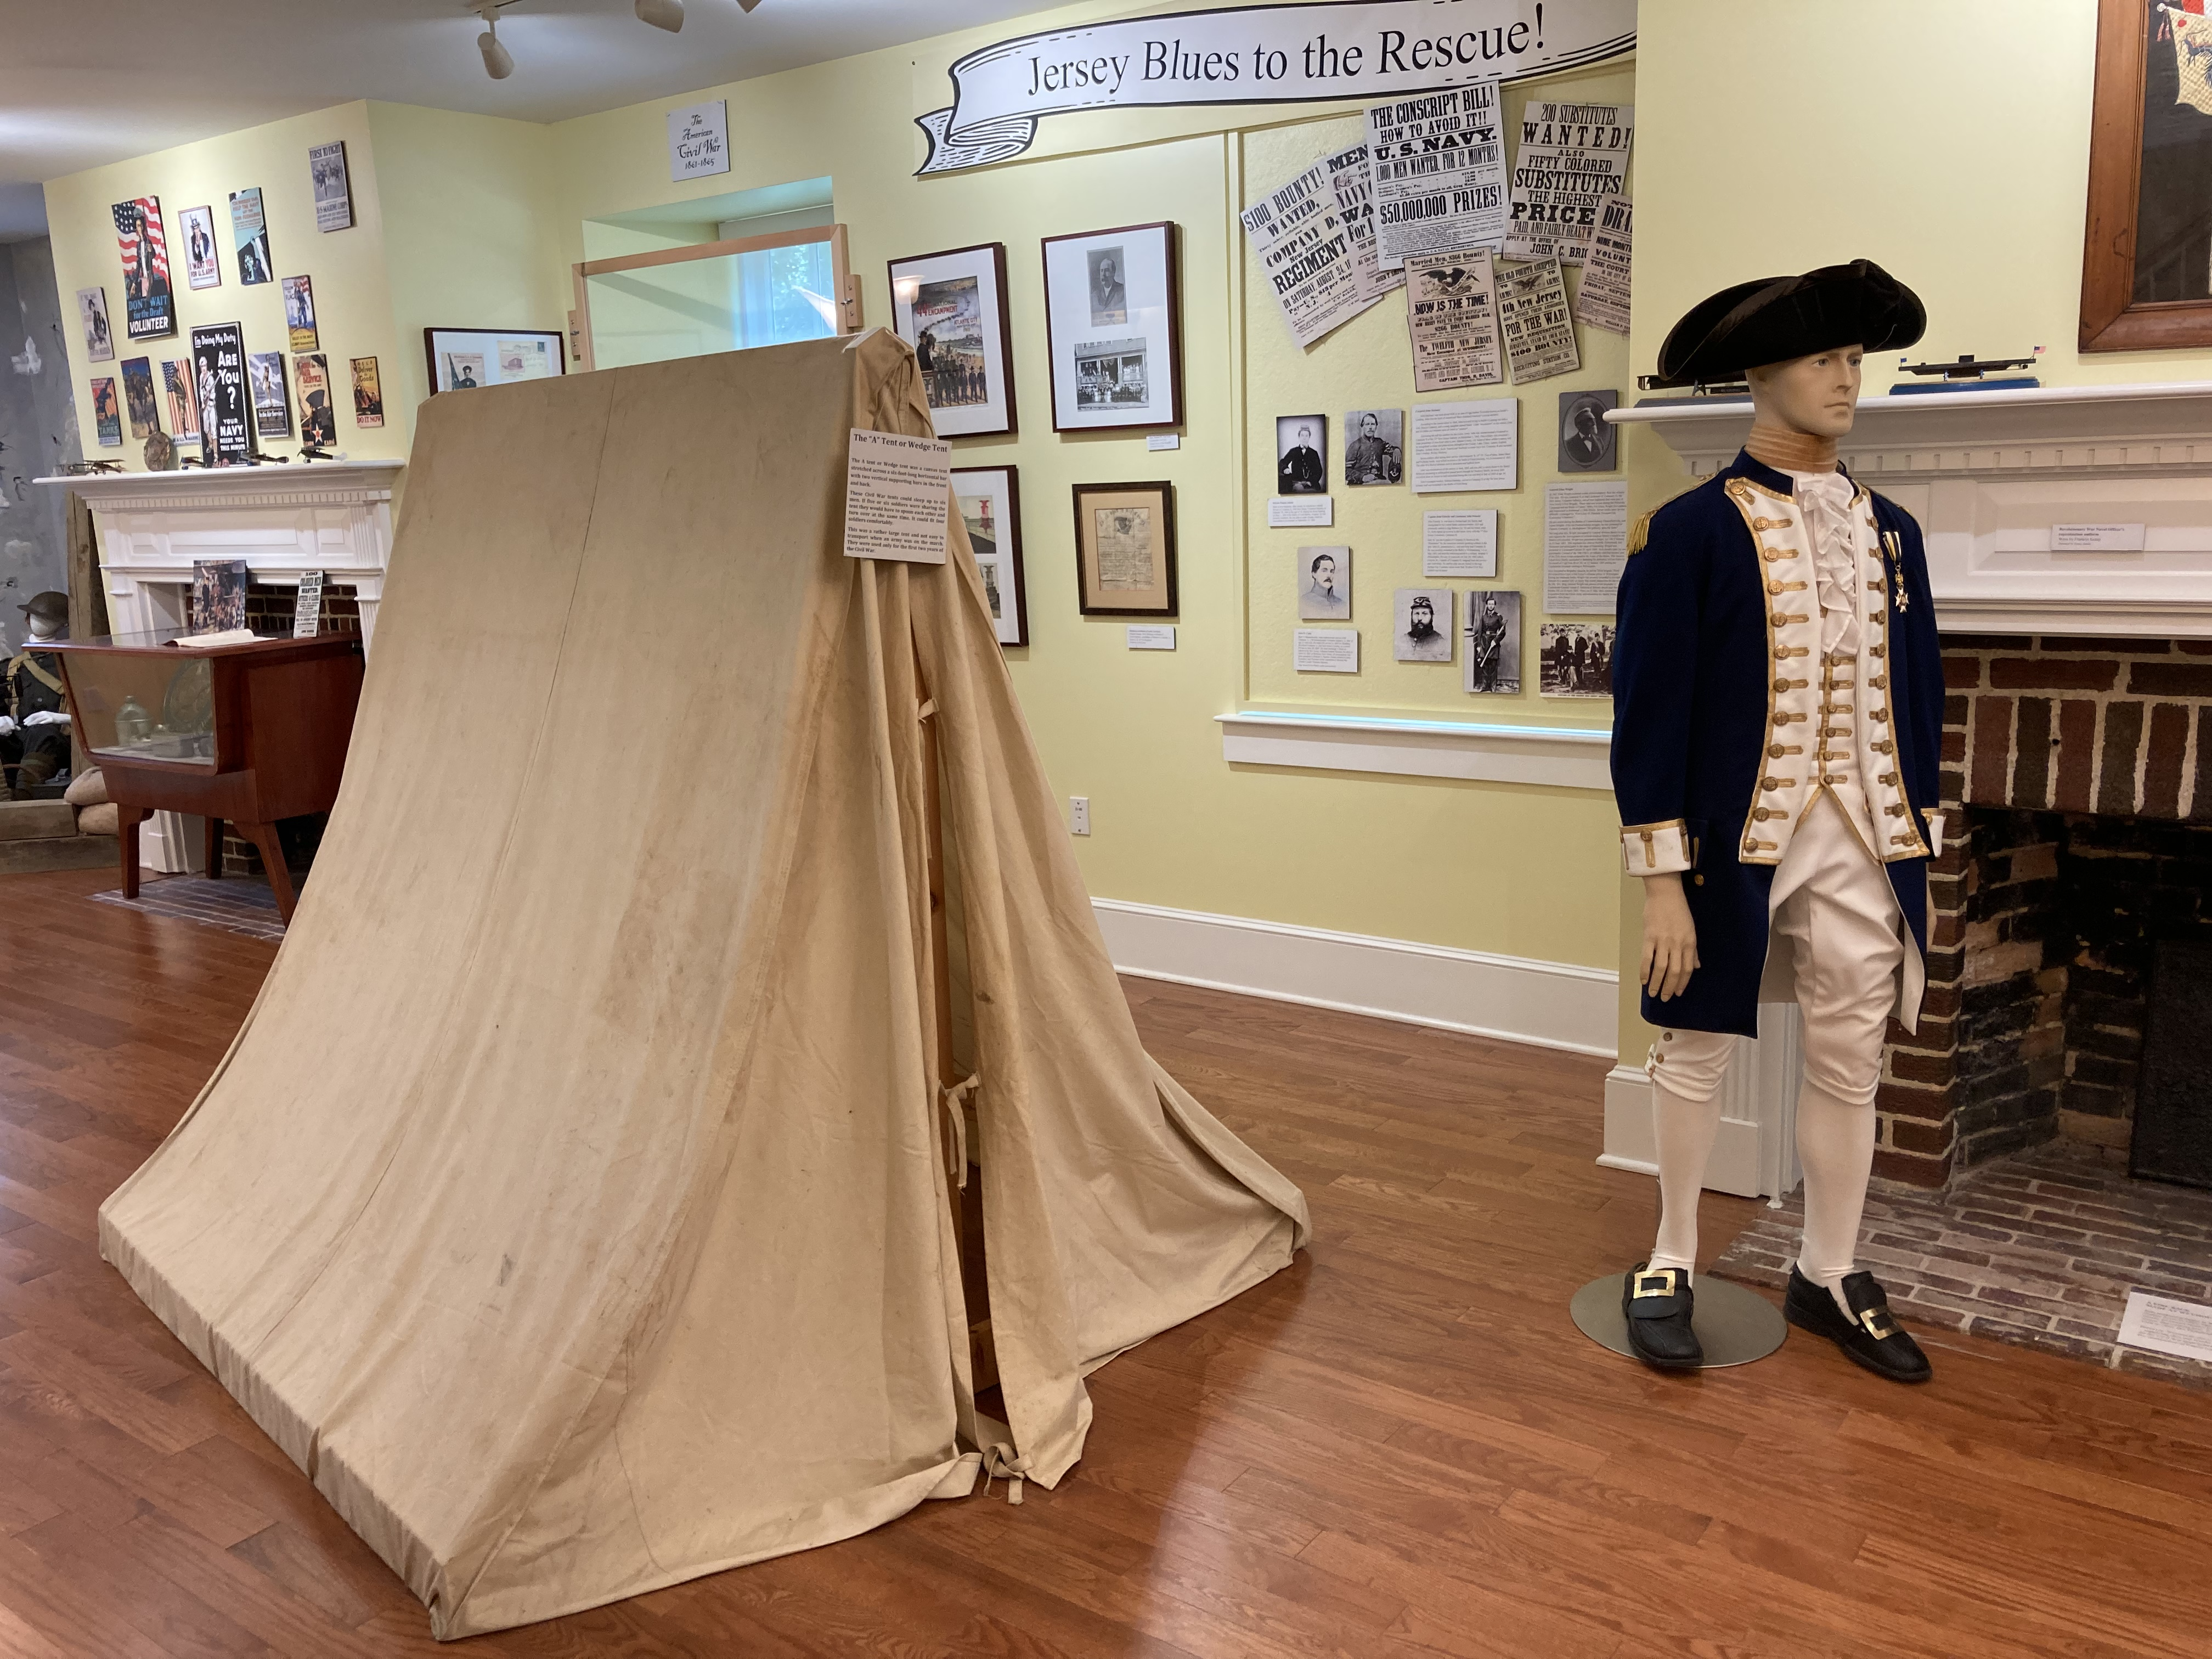 Room with mannequin dressed in Revolutionary War attire, and a small soldier's tent.